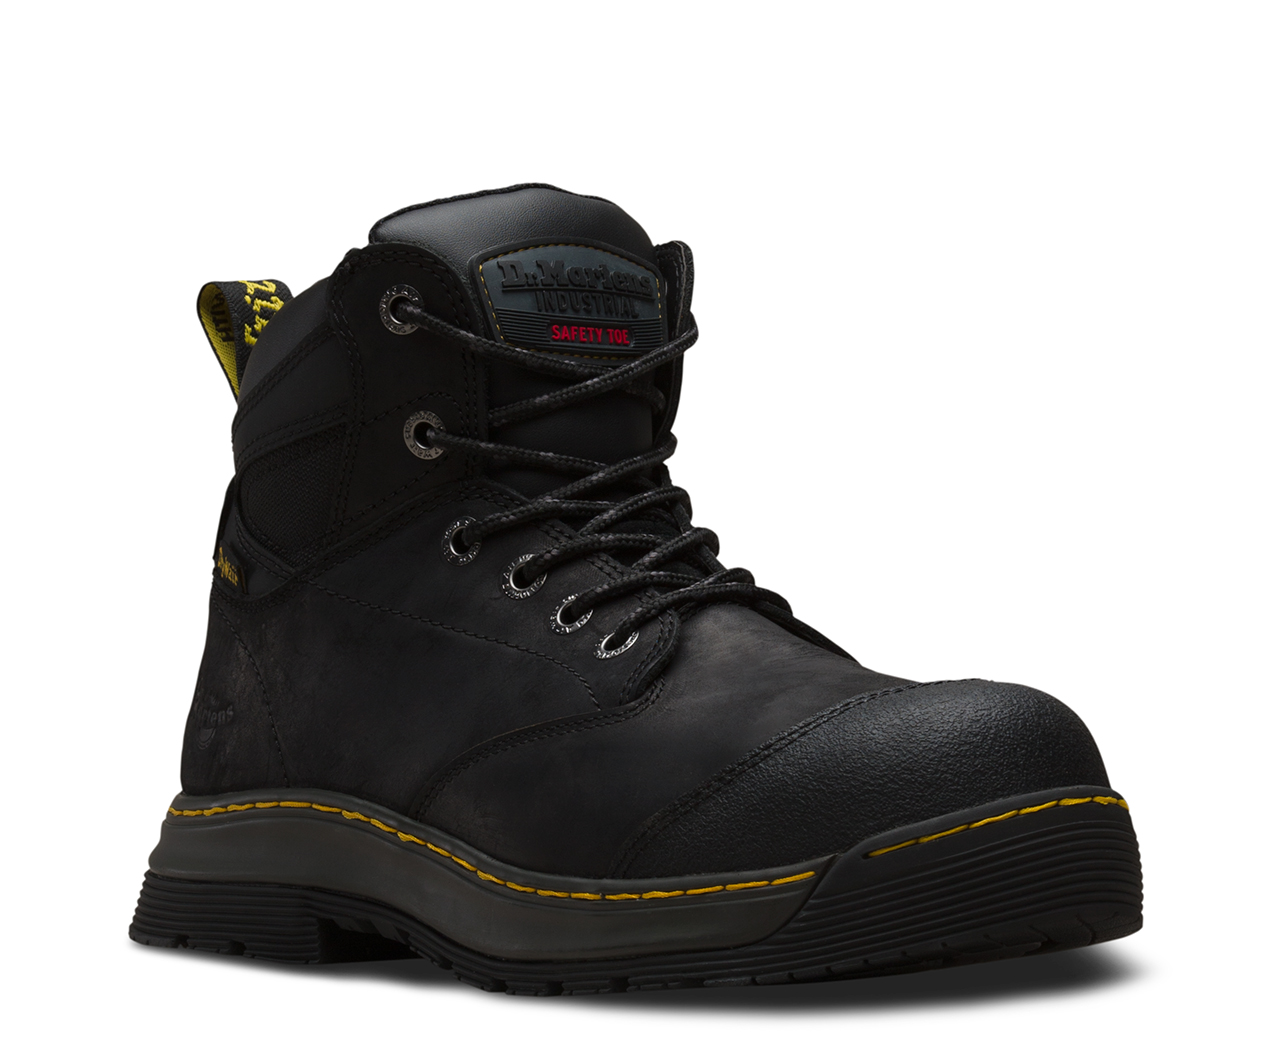 Deluge Safety Toe Work Boots Amp Shoes The Official Us